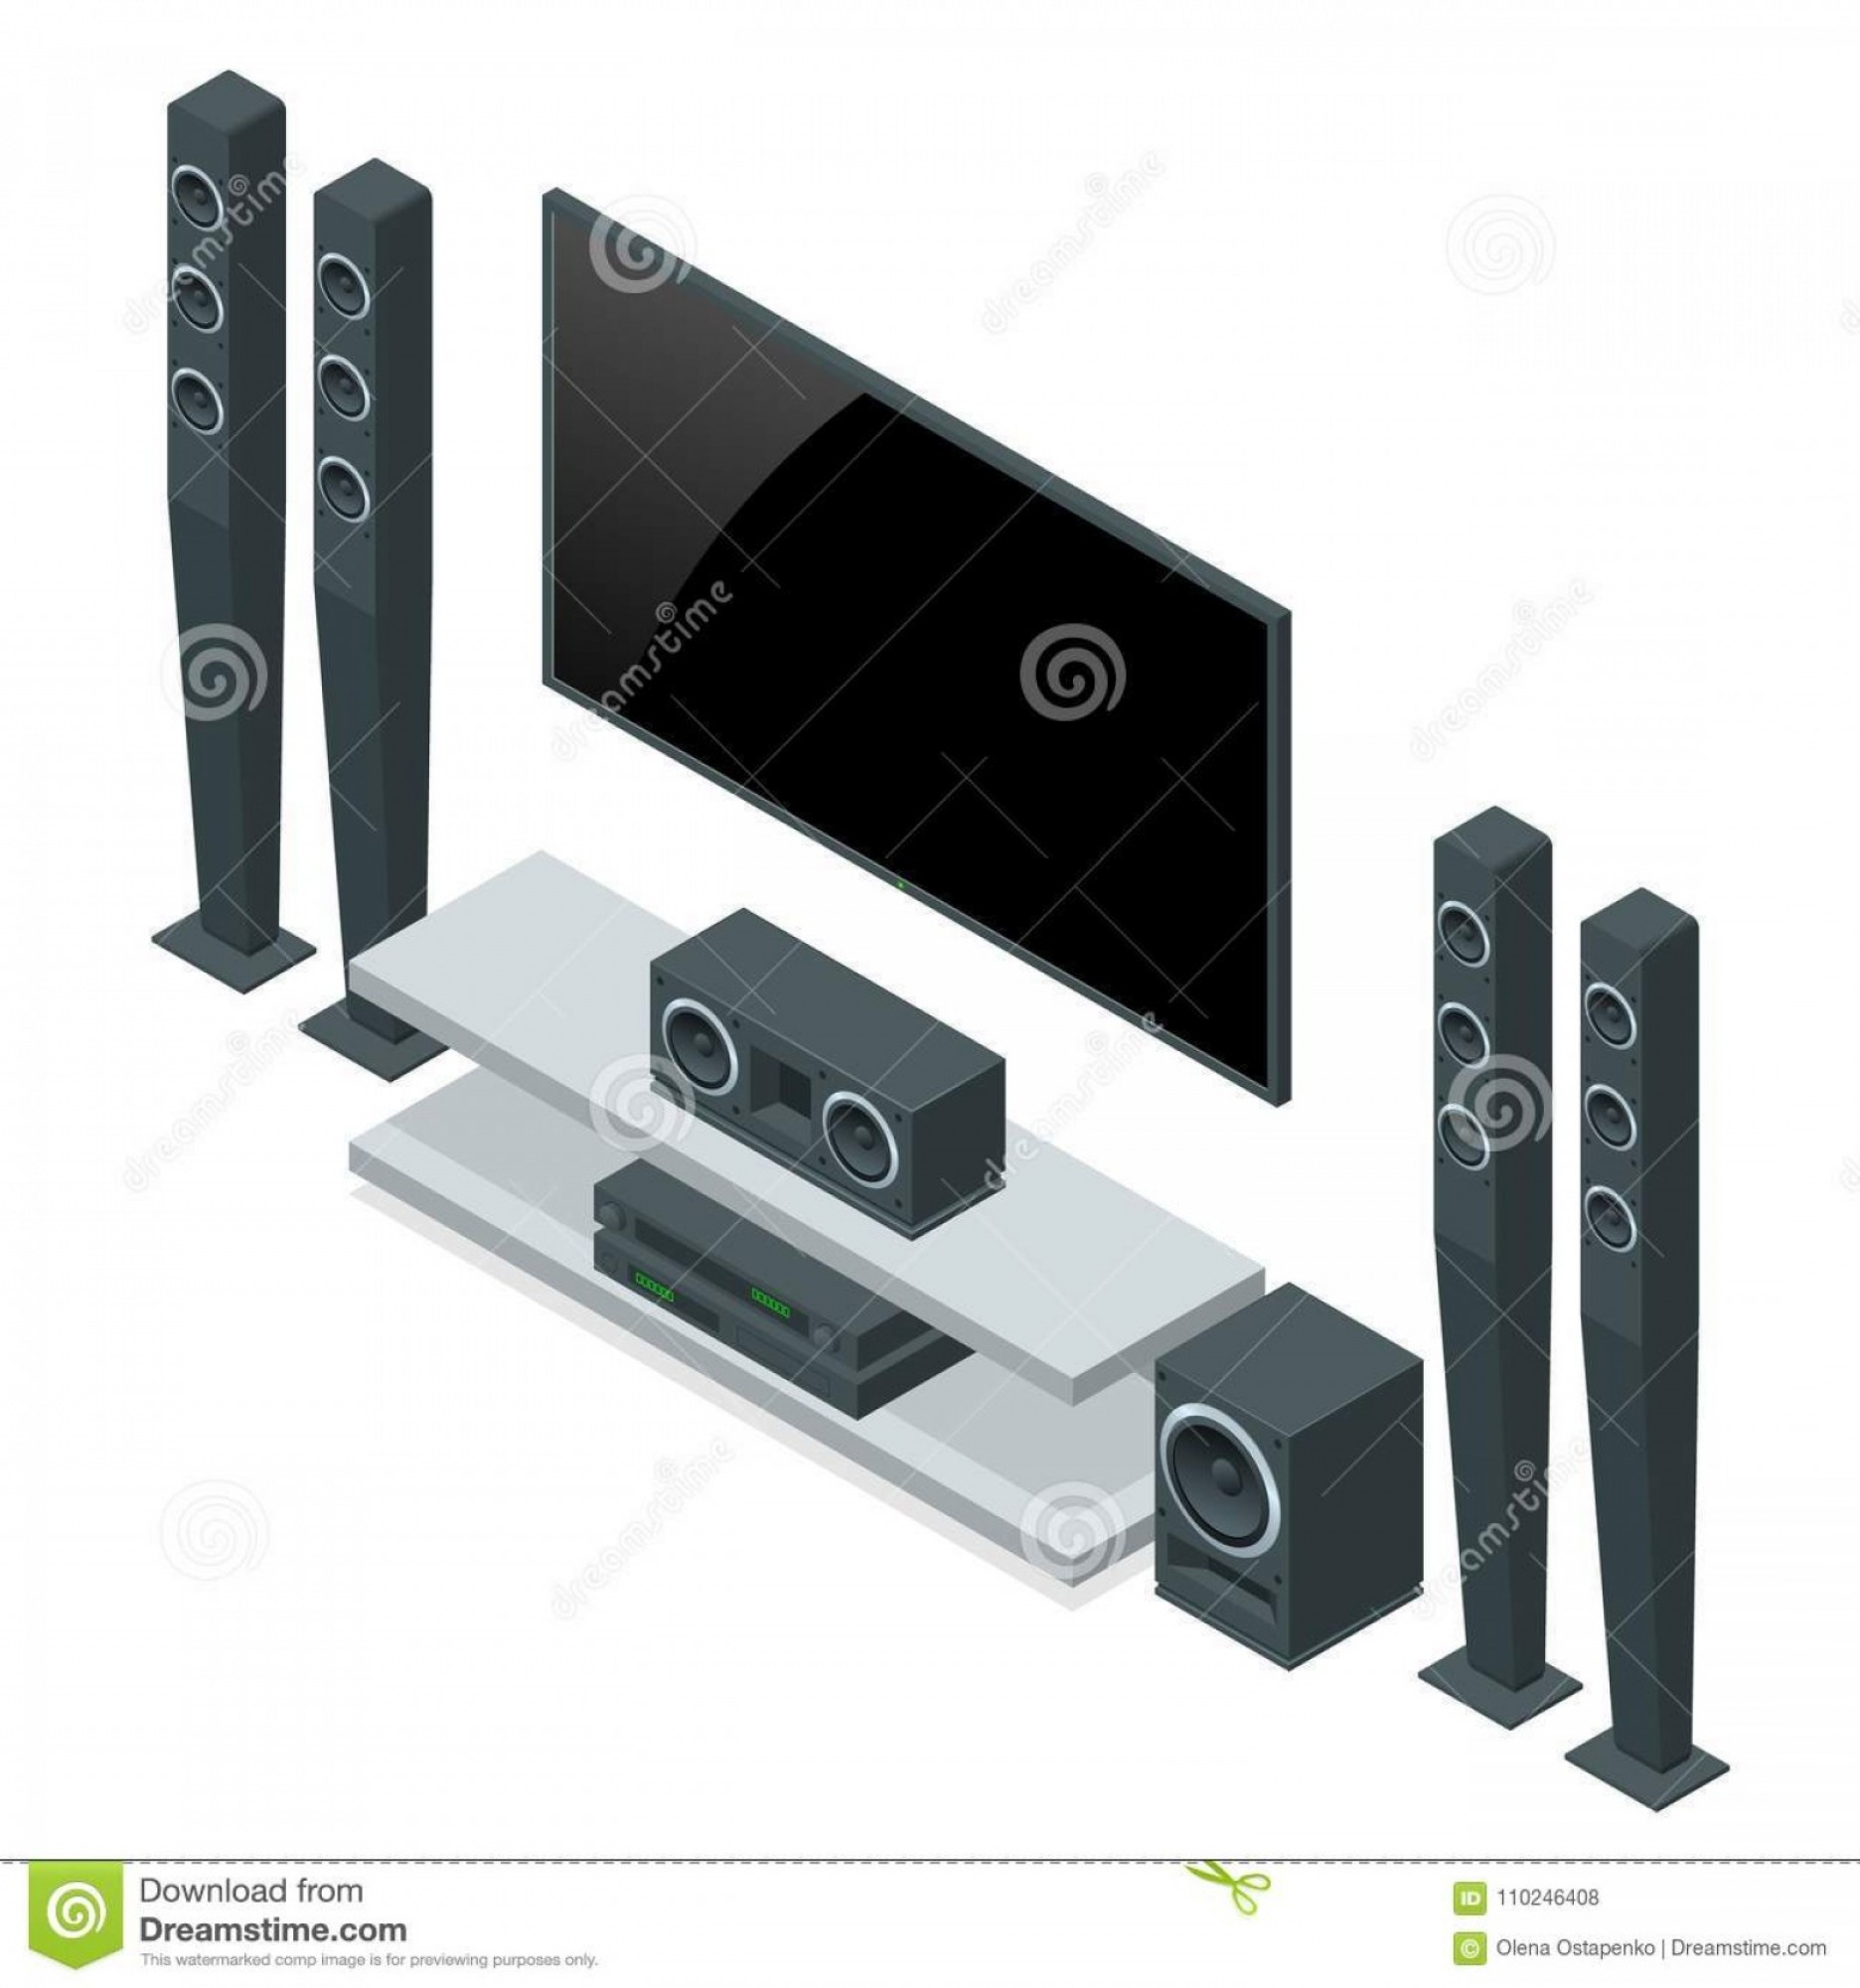 Xbox 360 Vector: Contemporary Home Theater Room Digitally Created High Resolution Rendered Home Theater System Vector Isometric Image